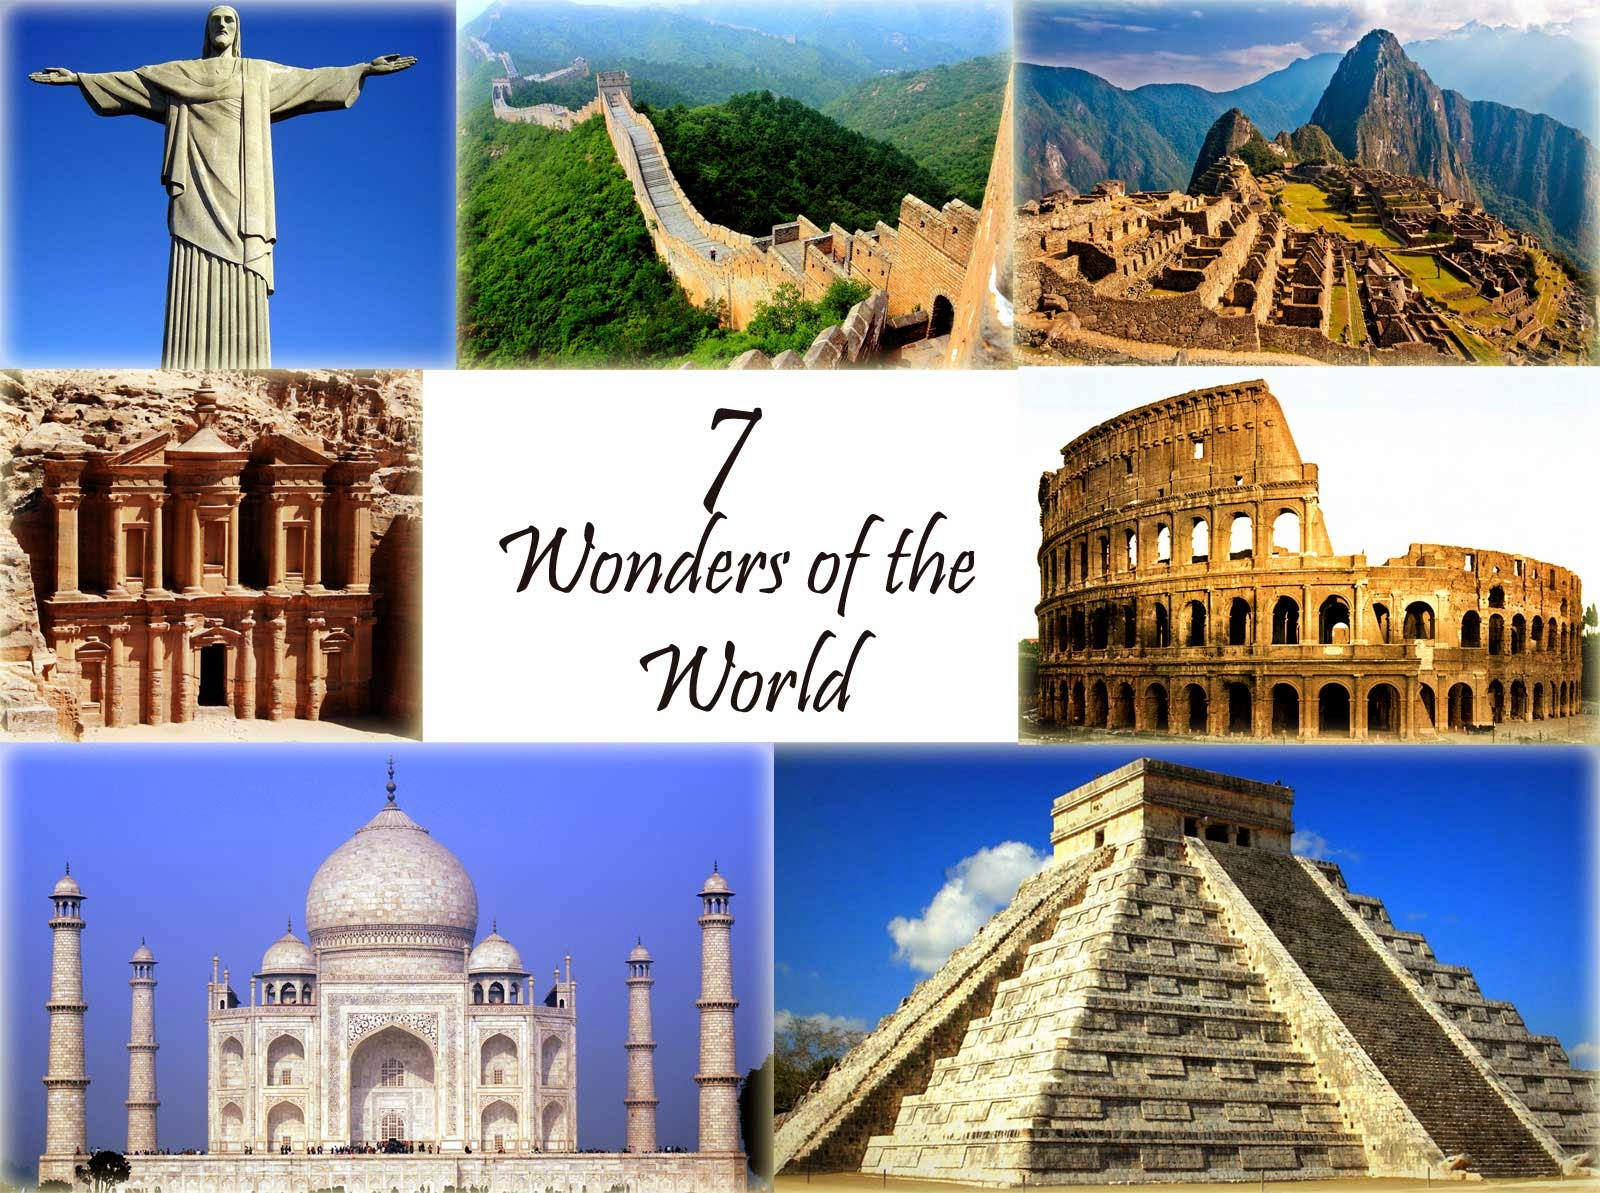 General Knowledge - Seven Wonders of the World